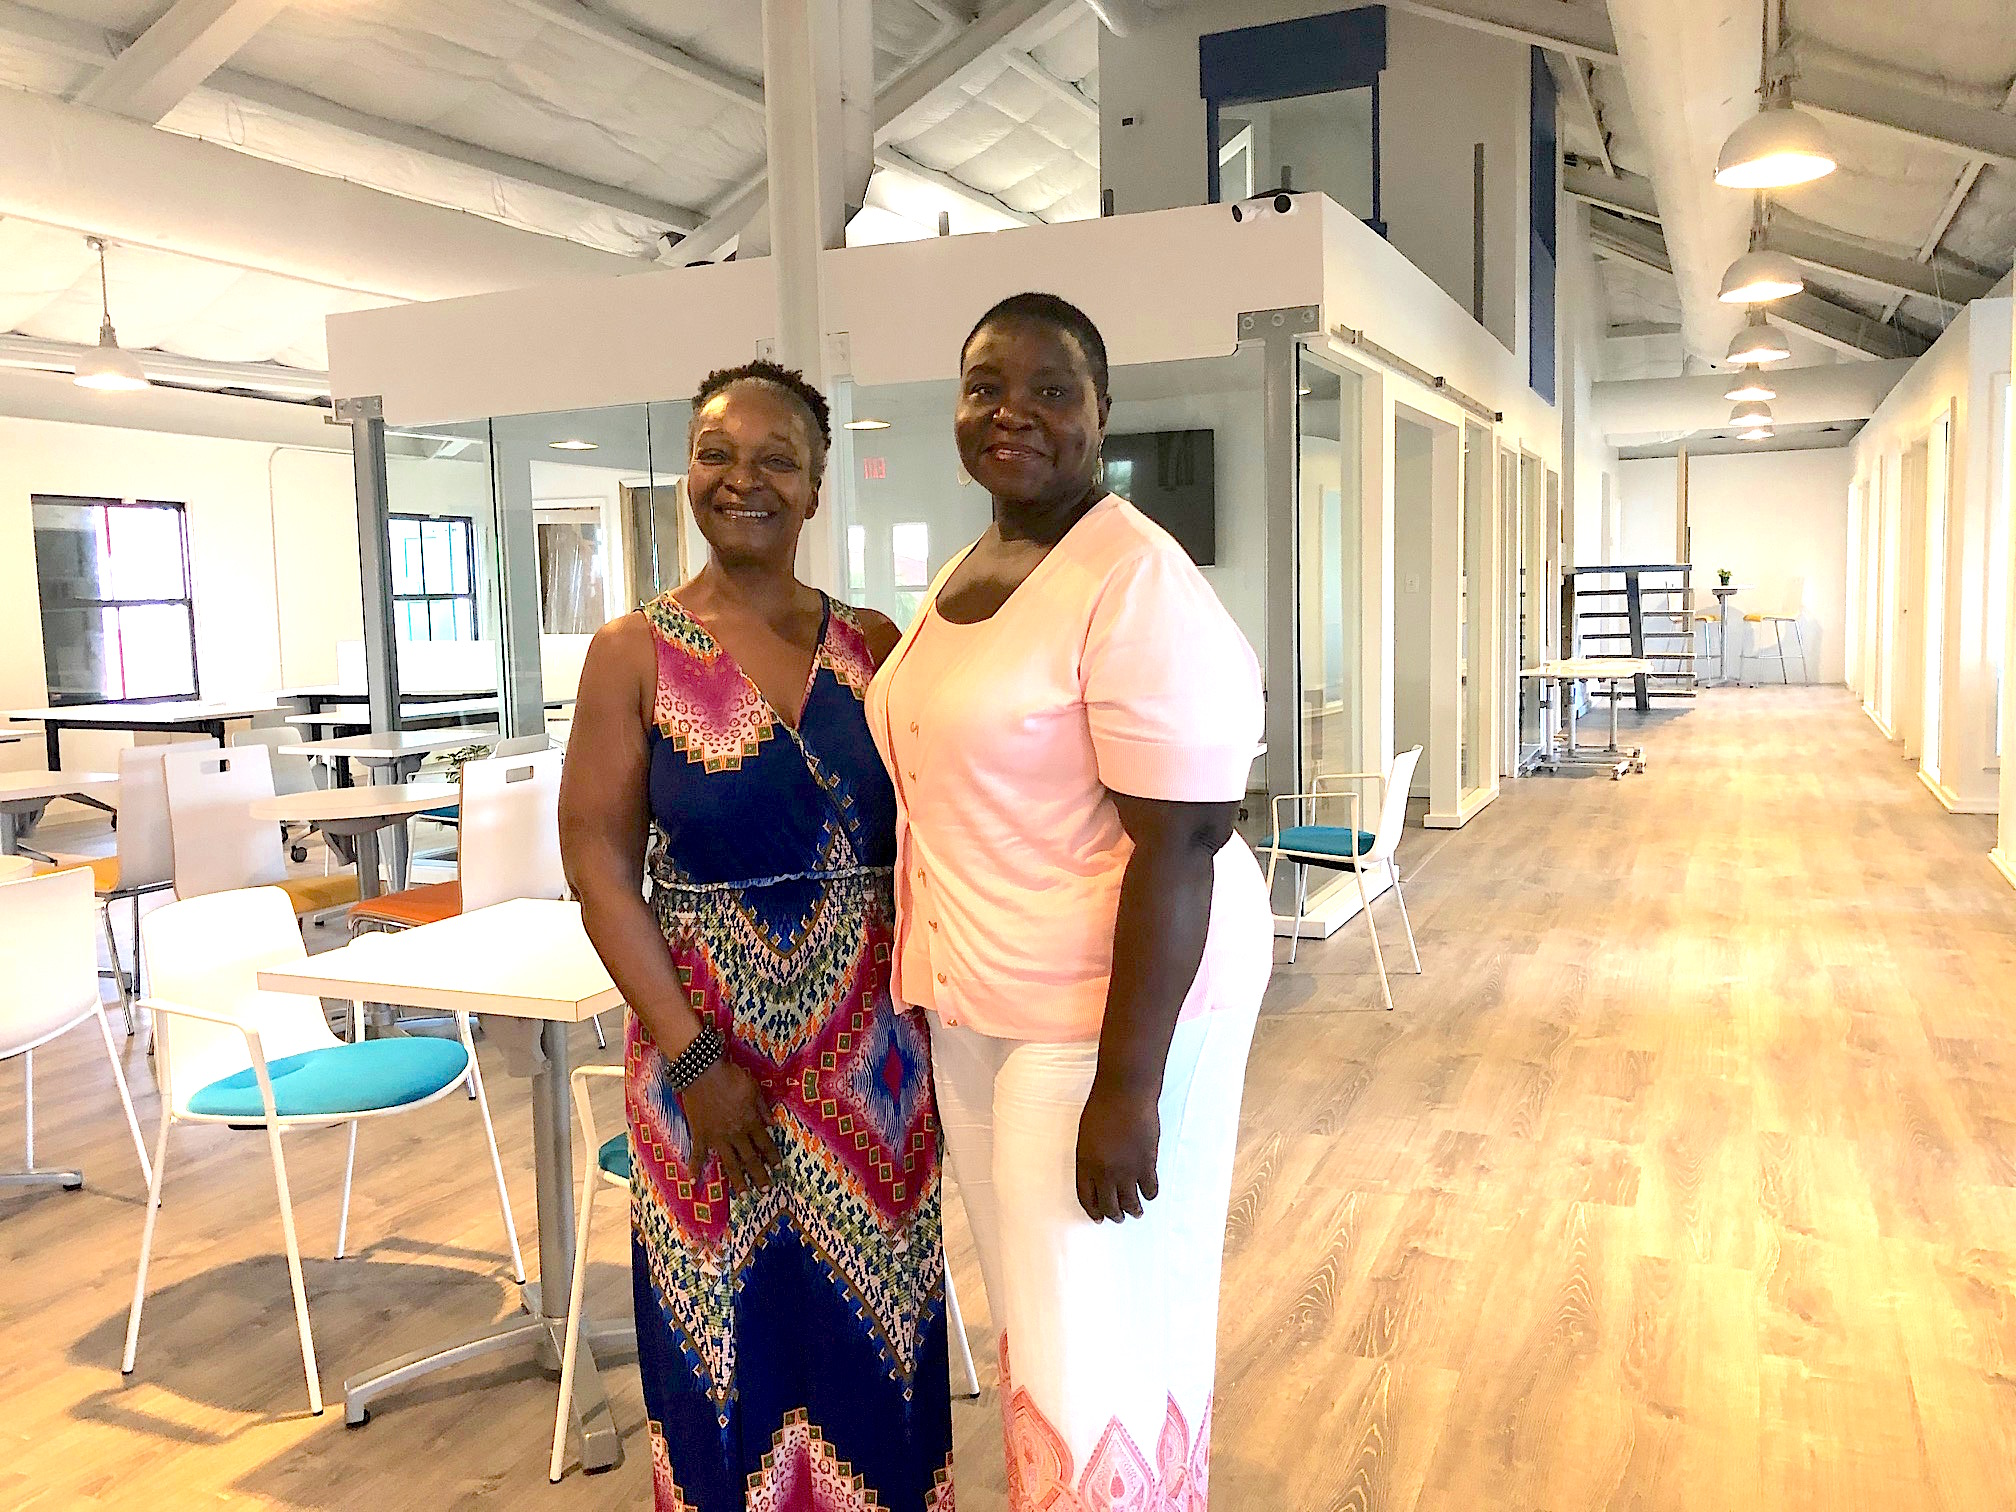 SEAT Caribbean co-founders Beverly Goodwine and Dr. Jennifer Sequeira invite residents and visitors to visit the new downtown facility. Not shown: co-founder Sonja Sulcer.